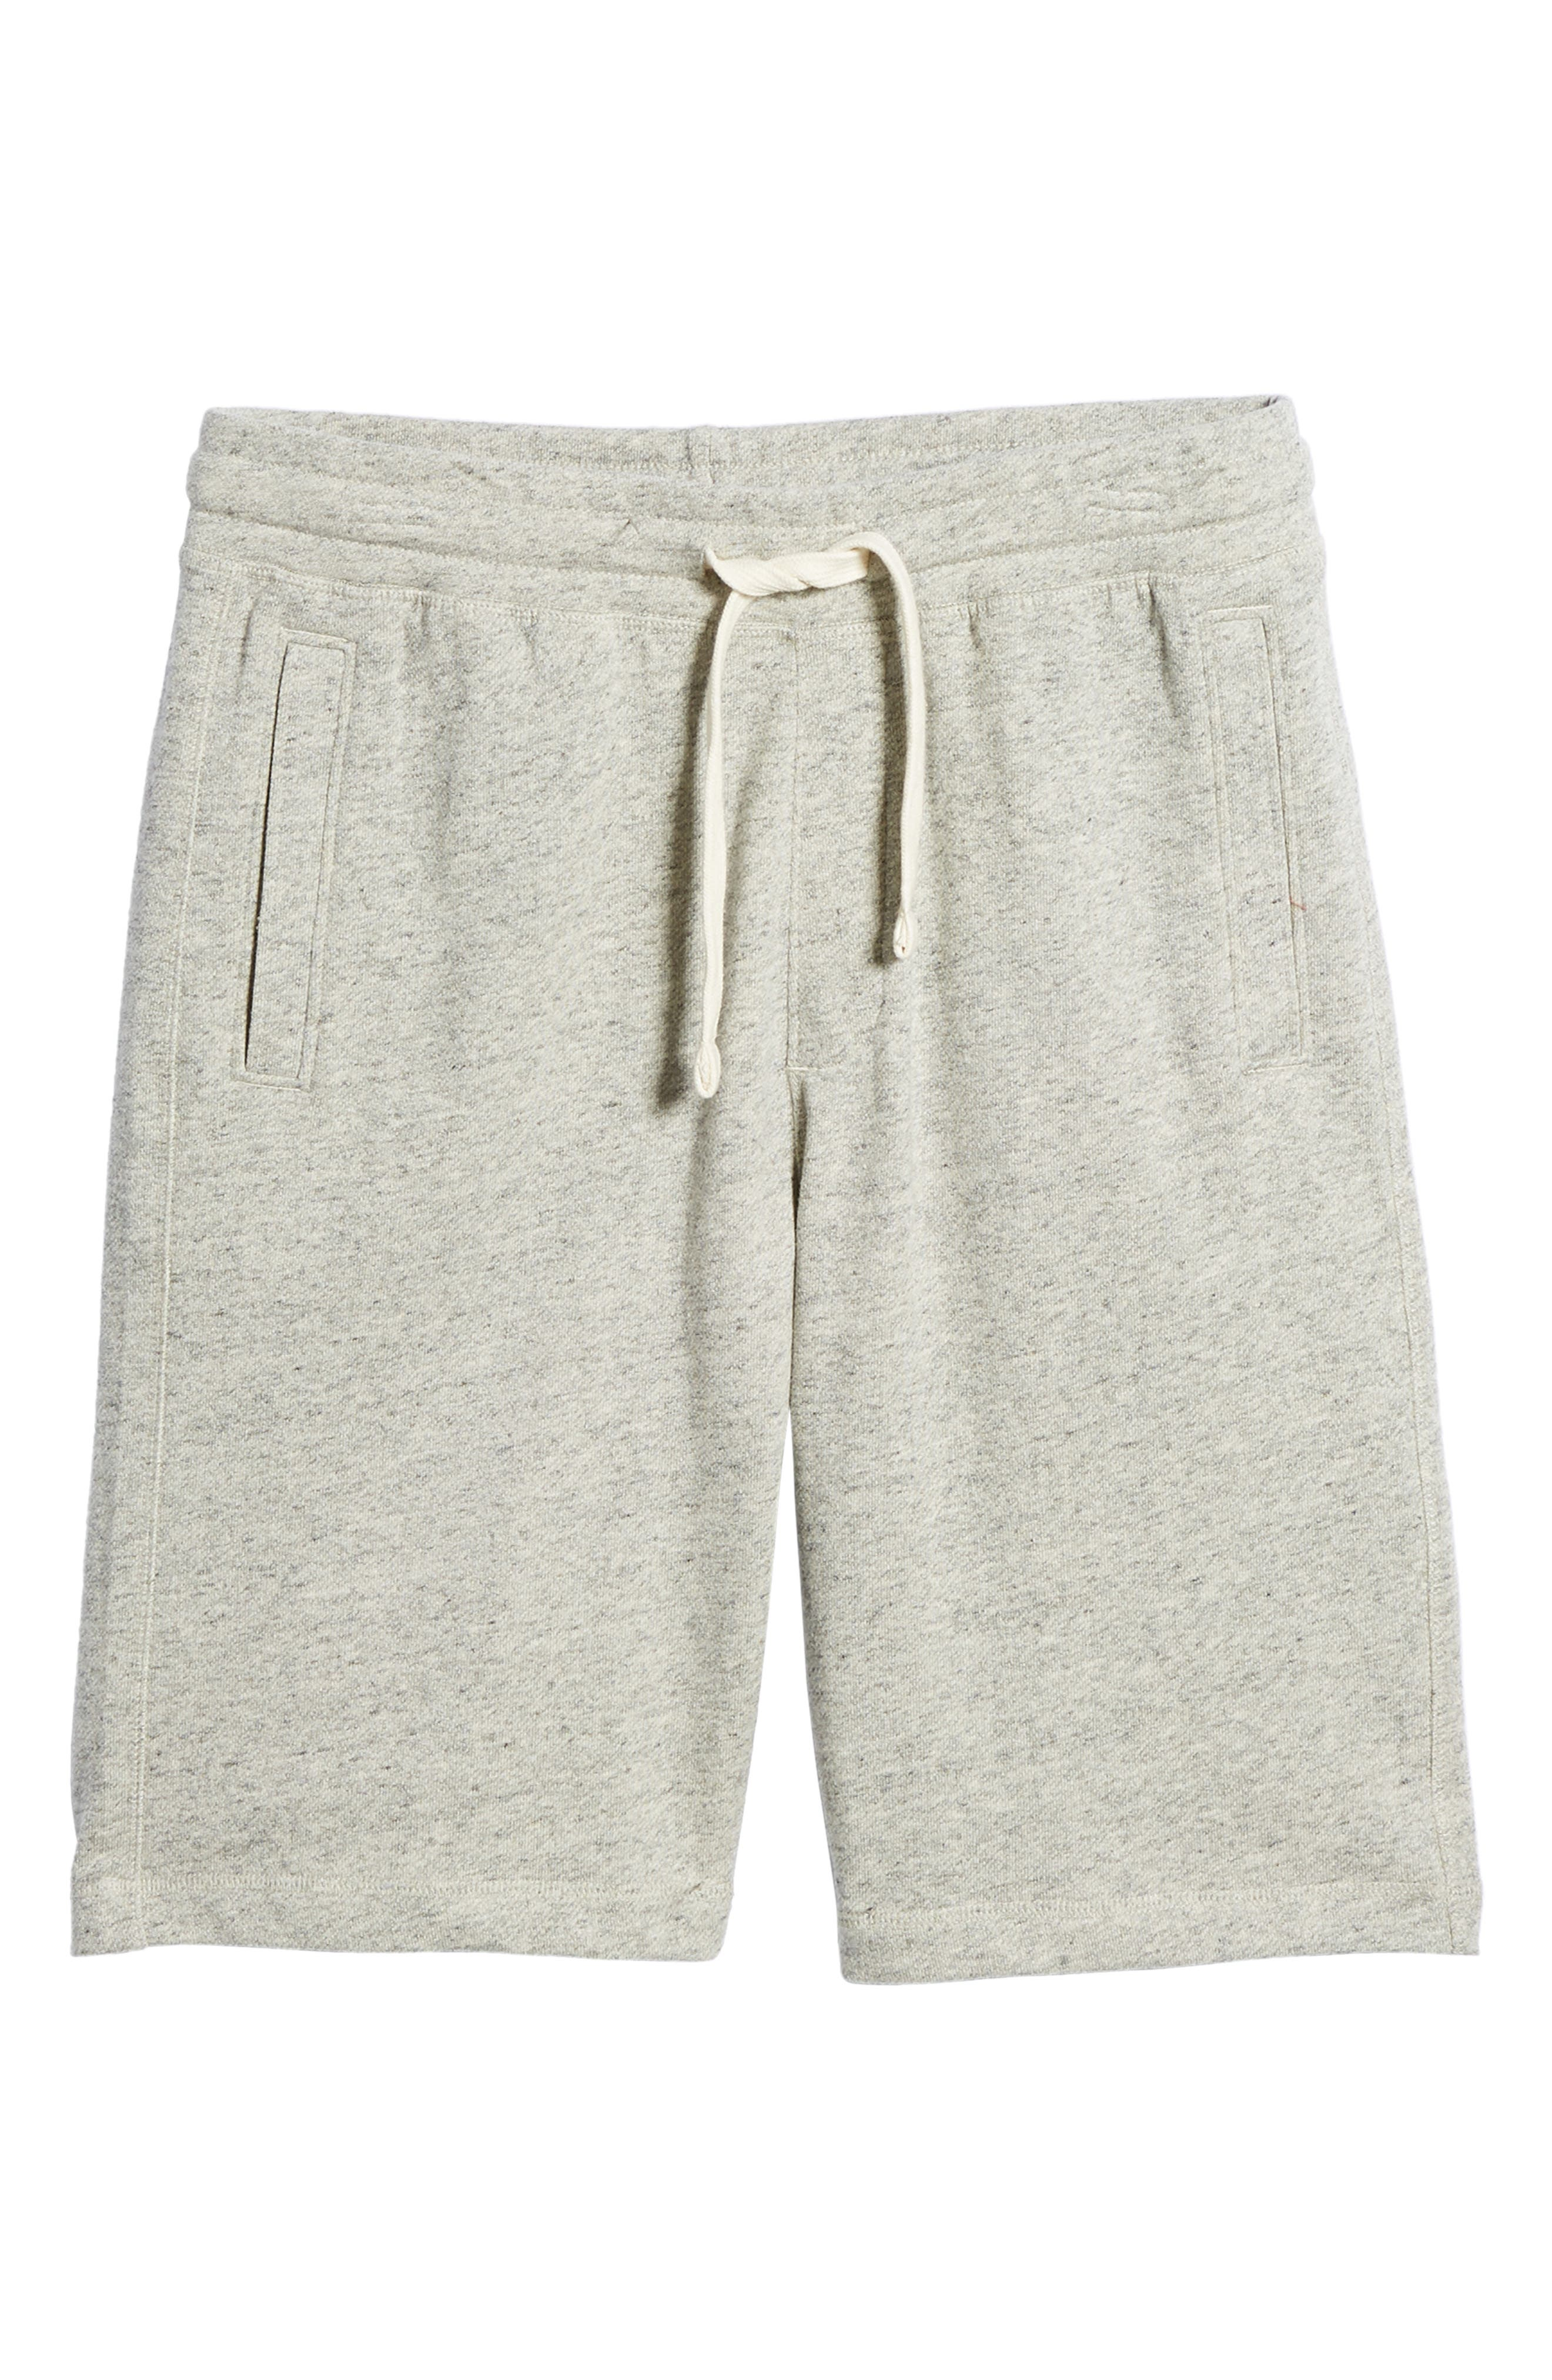 Stretch Cotton Terry Shorts,                             Alternate thumbnail 6, color,                             063